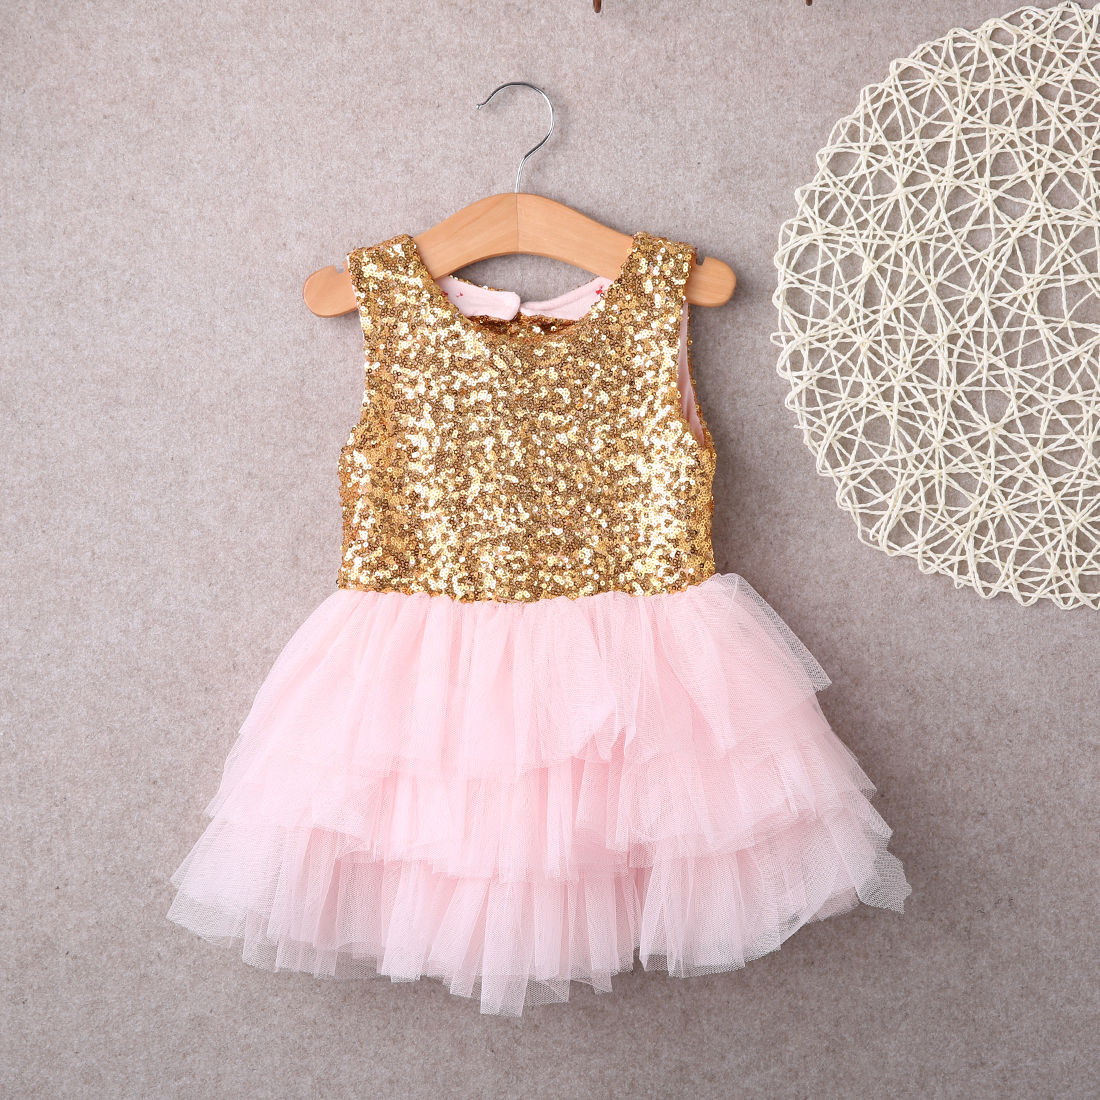 Dresses 2016 New Baby Children Girl Sequins Backless Bow Gold Lace Tulle Ruffled Party Mini Ball Gown Formal Dress Fashion Girl gold sequins lace up backless cami top in butterfly shape